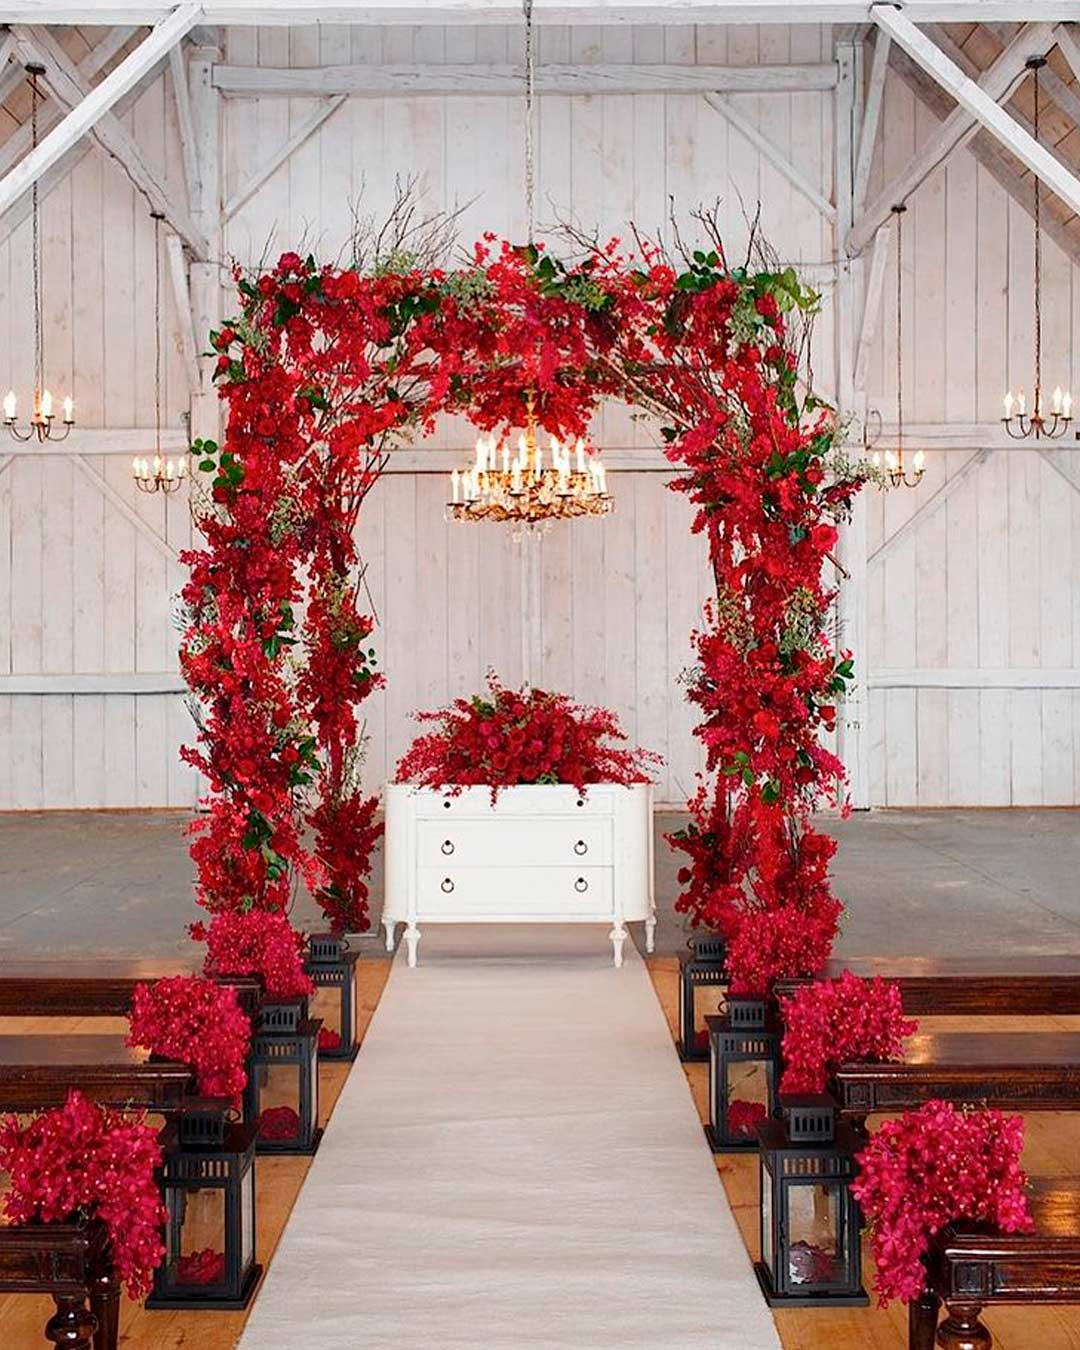 rustic wedding ideas aisle lanterns red flowers